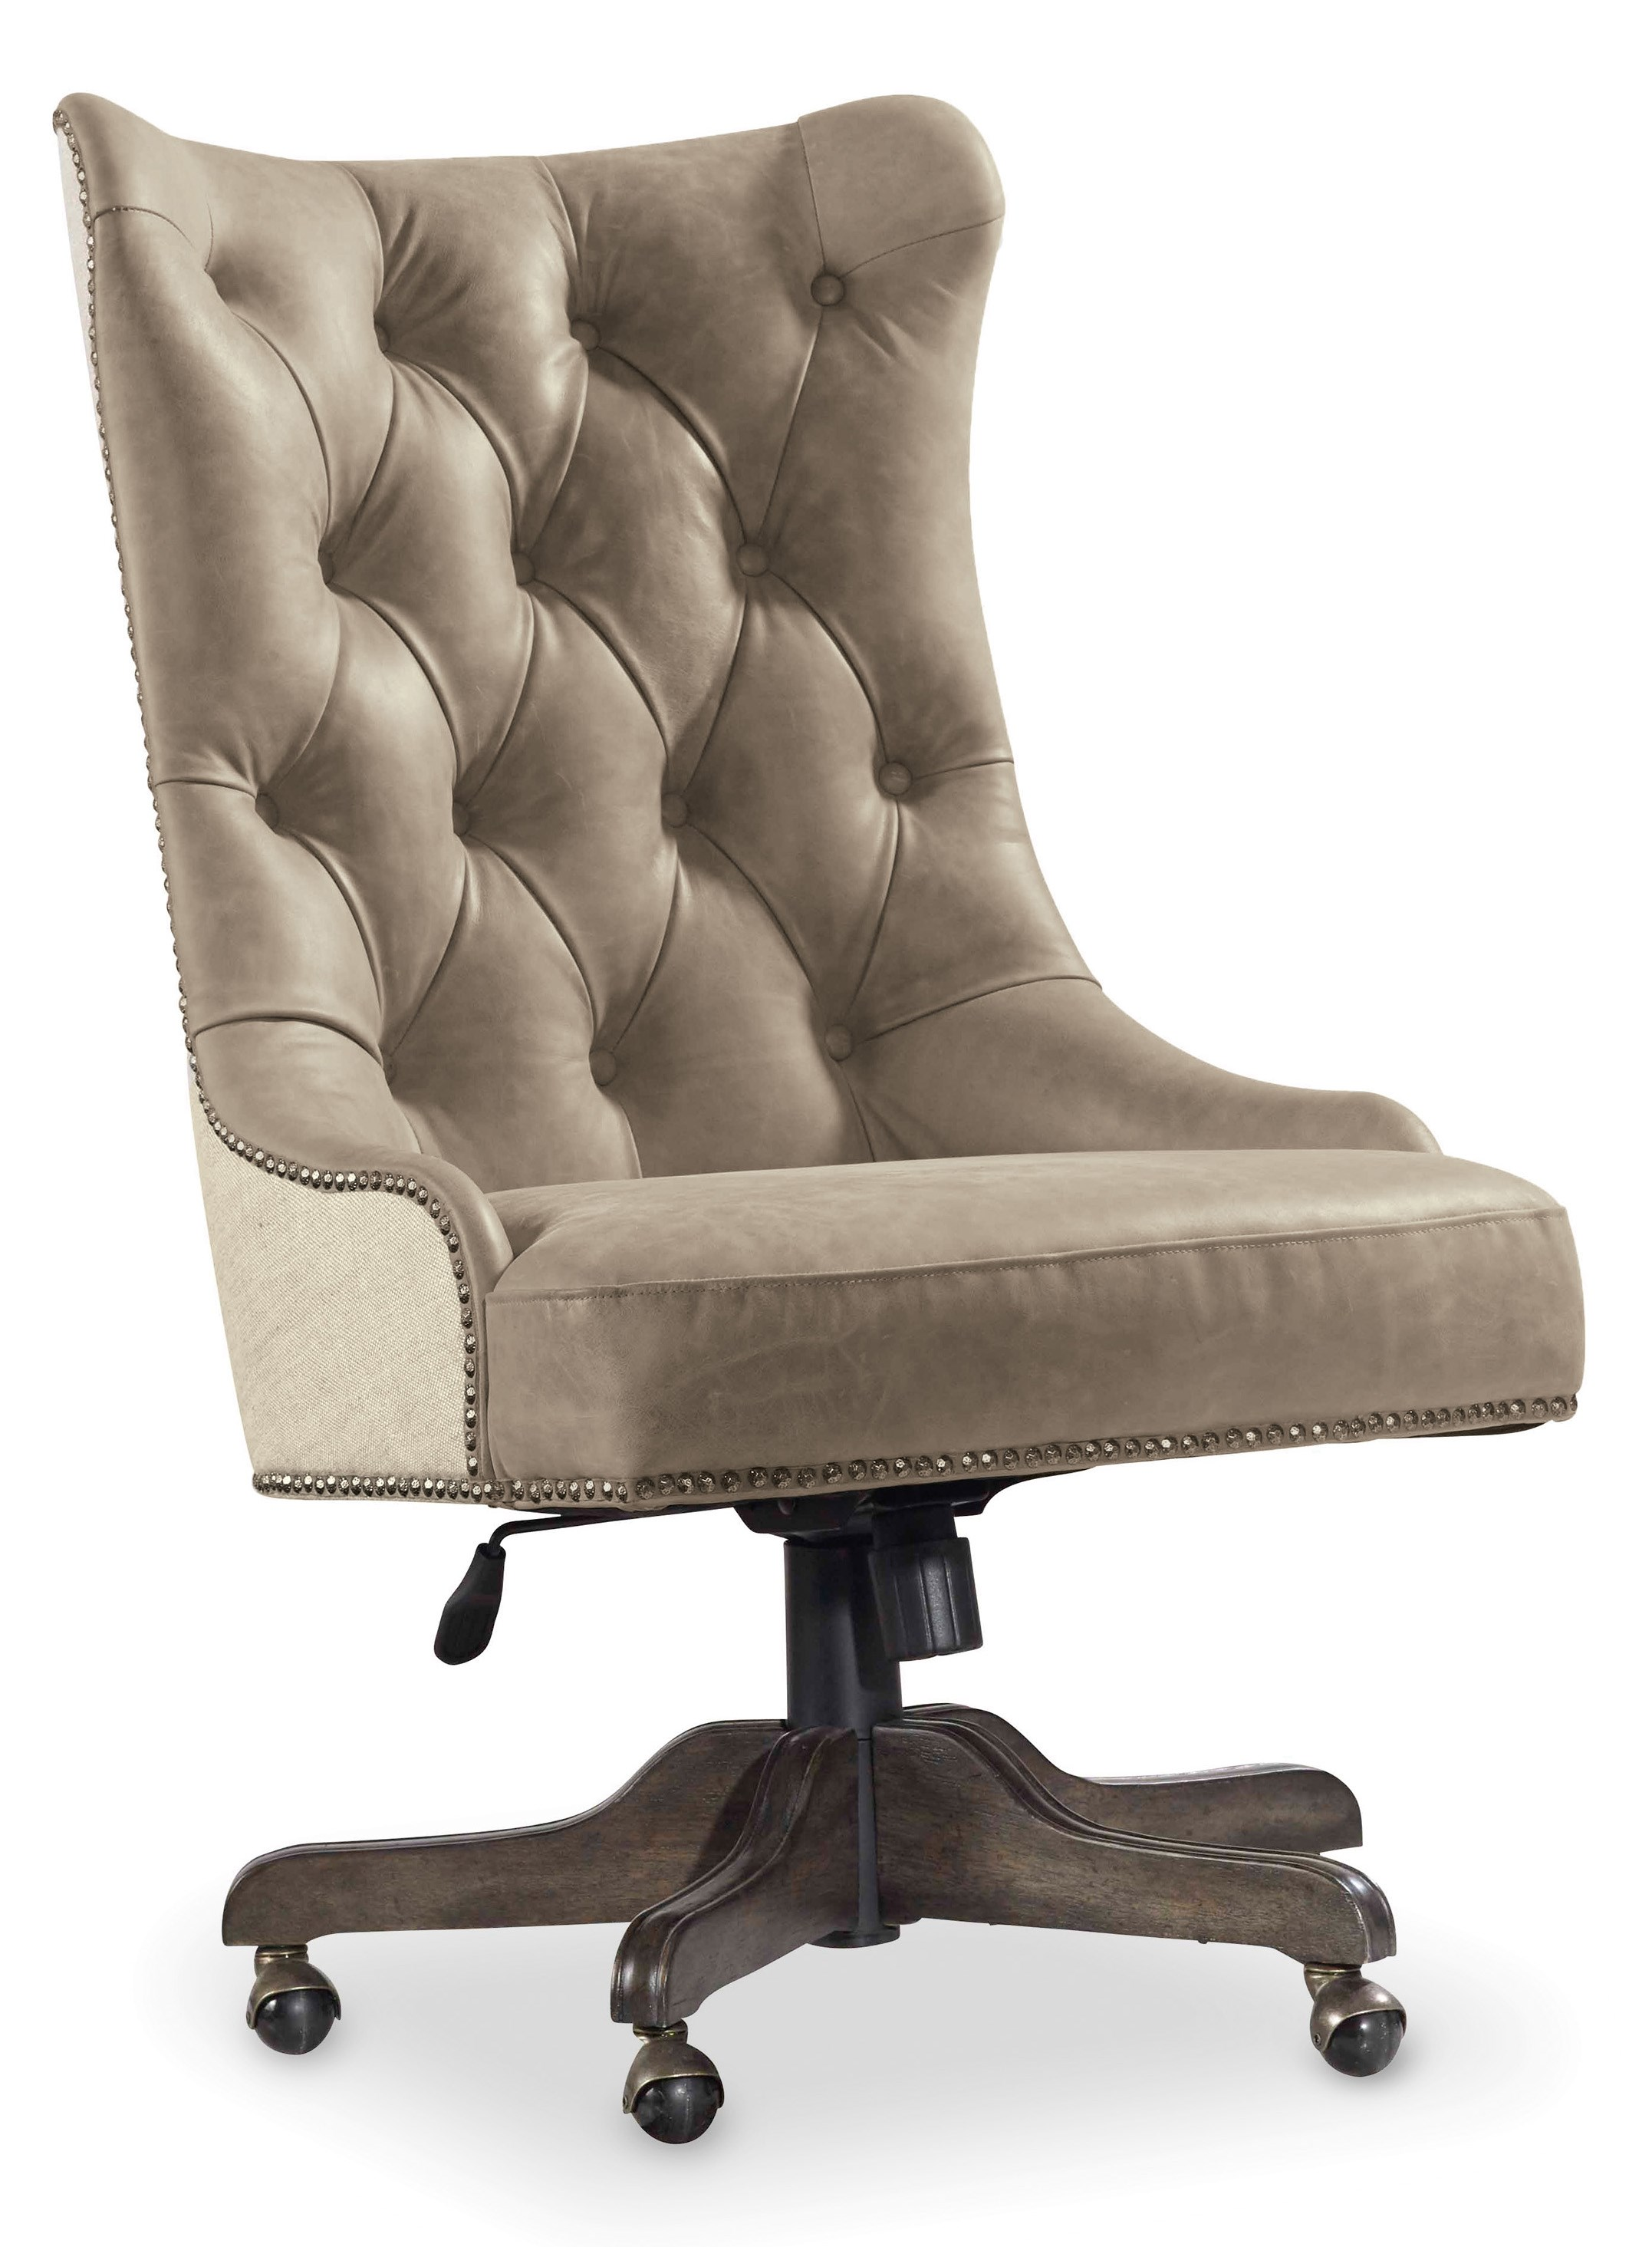 Hooker Furniture Vintage West Executive Desk Chair With Tufted Back